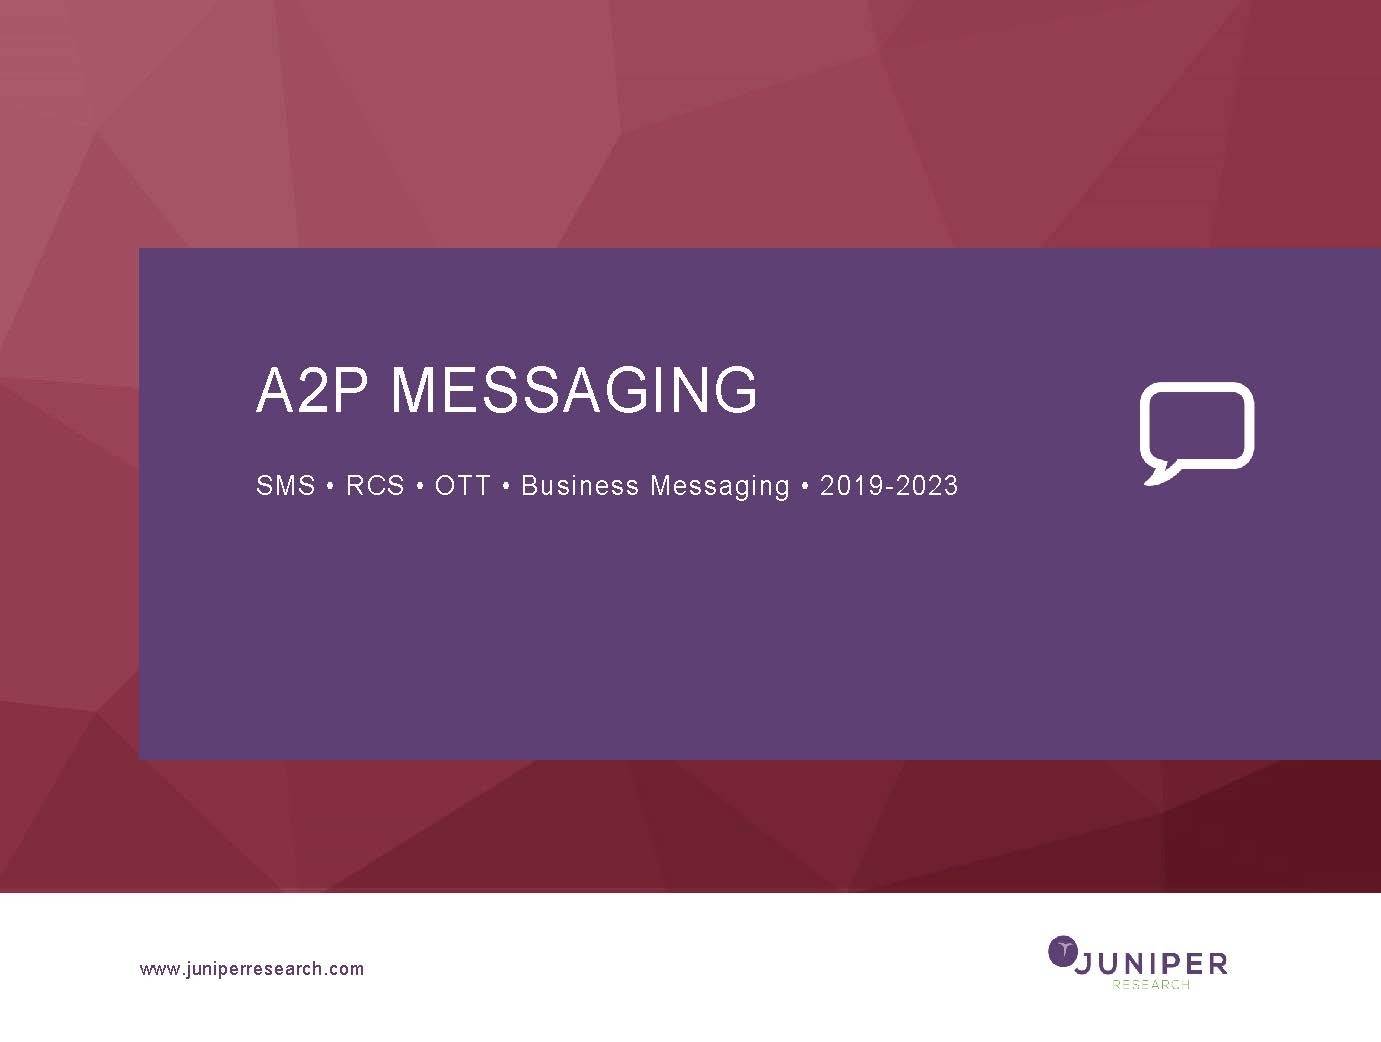 A2P Messaging - Deep Dive Strategy & Competition 2019-2023